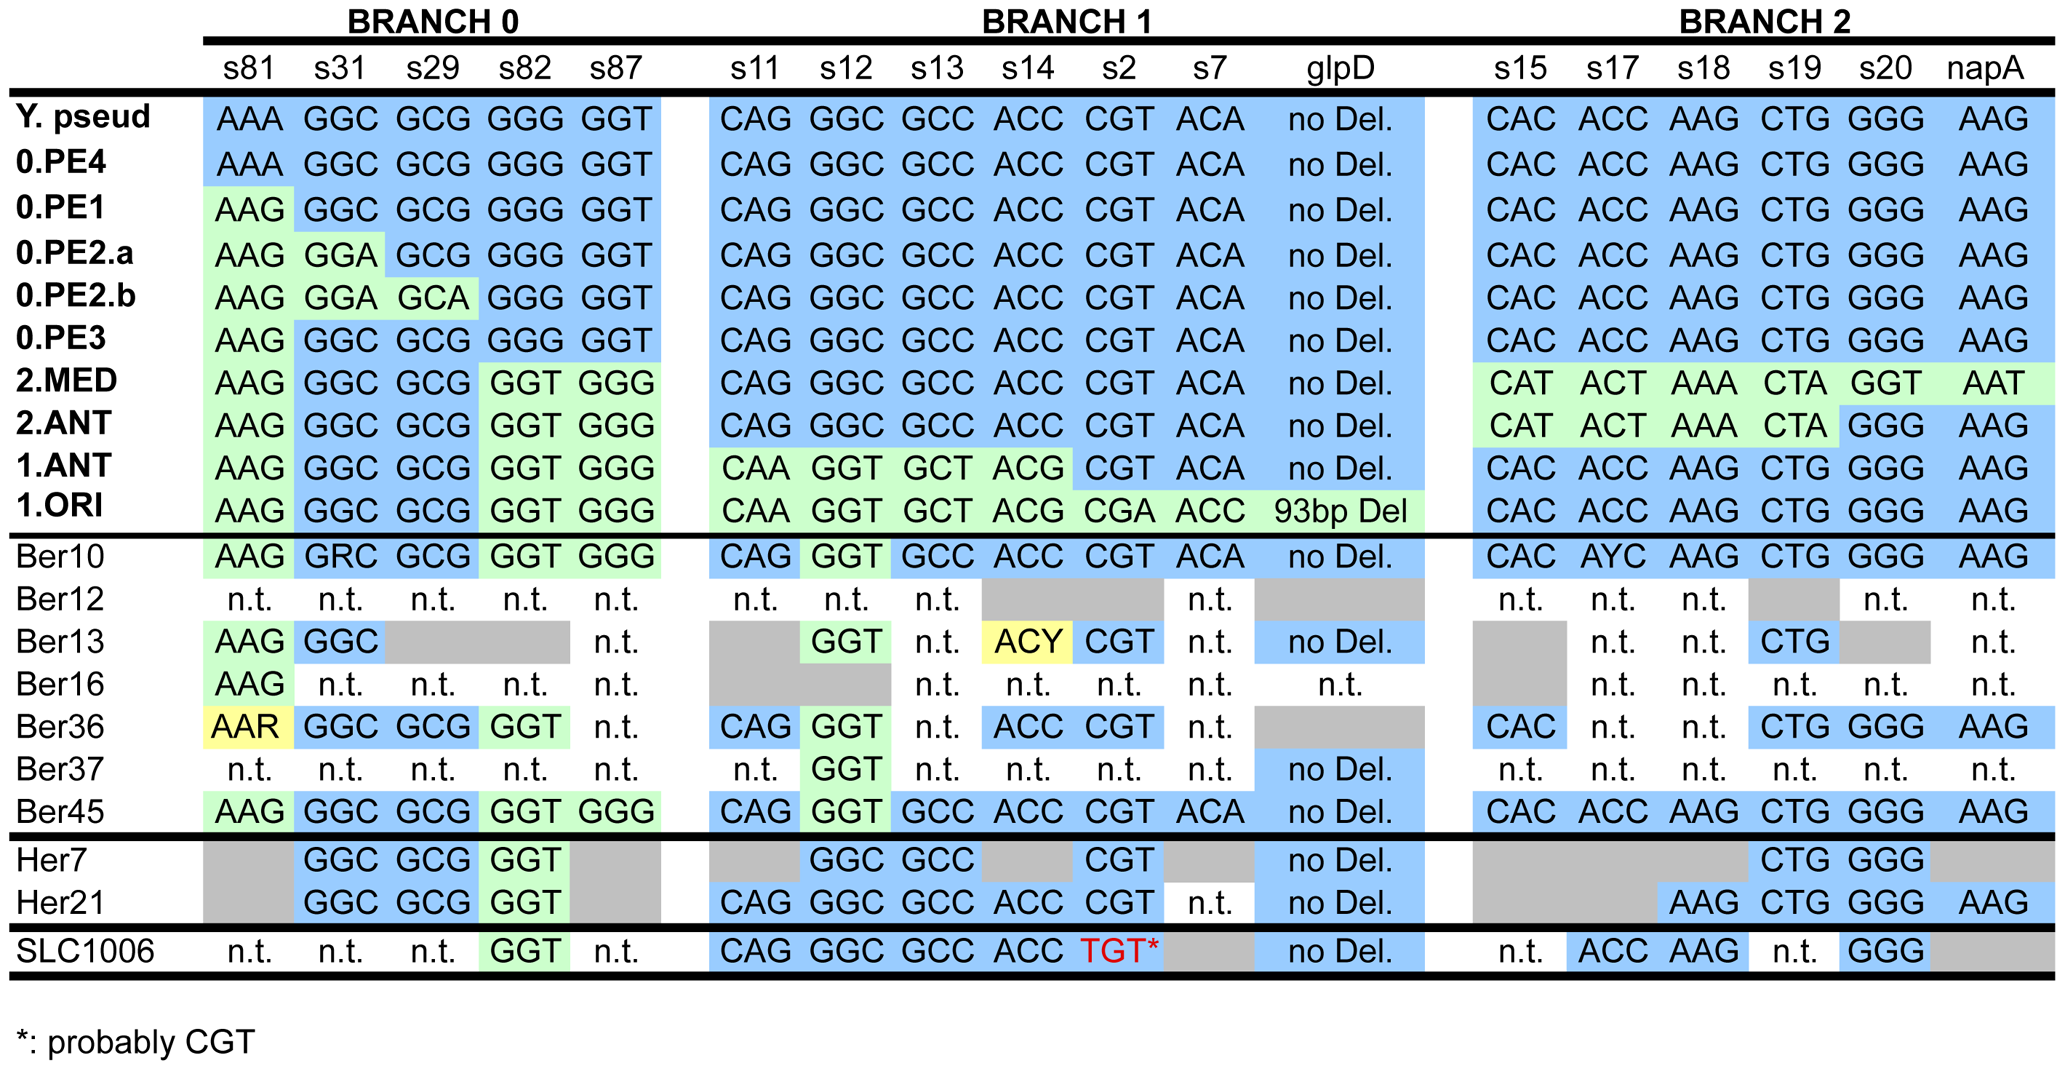 Analysis of aDNA from human remains with 18 markers (<i>glpD</i>, <i>napA</i> and 16 SNPs <em class=&quot;ref&quot;>[<b>11</b>]</em>) that define the three main branches of the <i>Y. pestis</i> evolutionary tree.